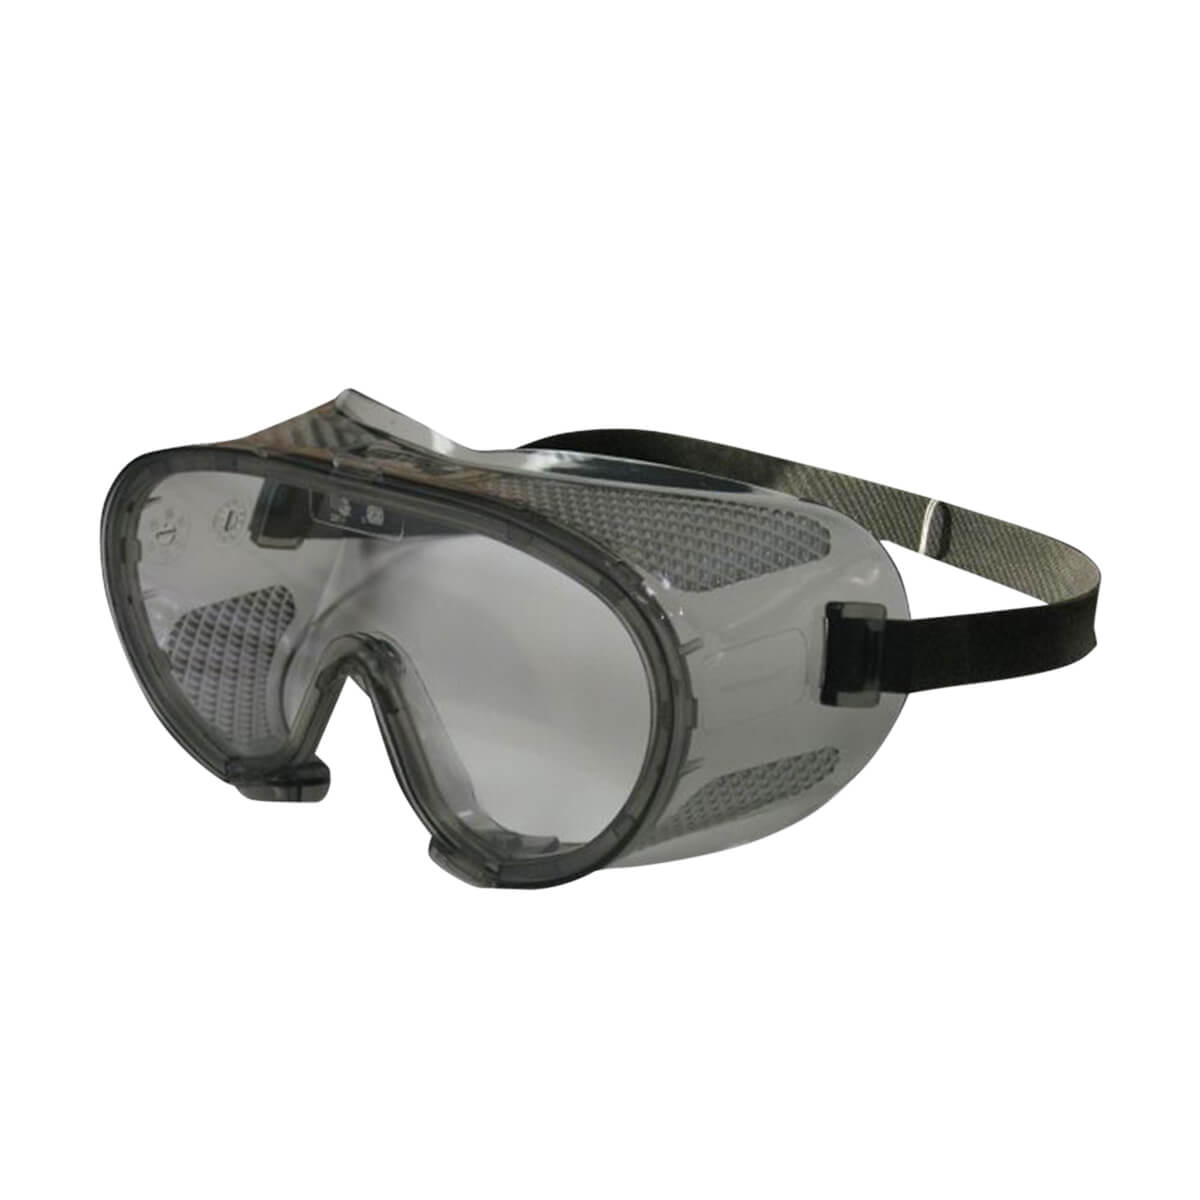 Direct Ventilated Impact/Splash Safety Goggle